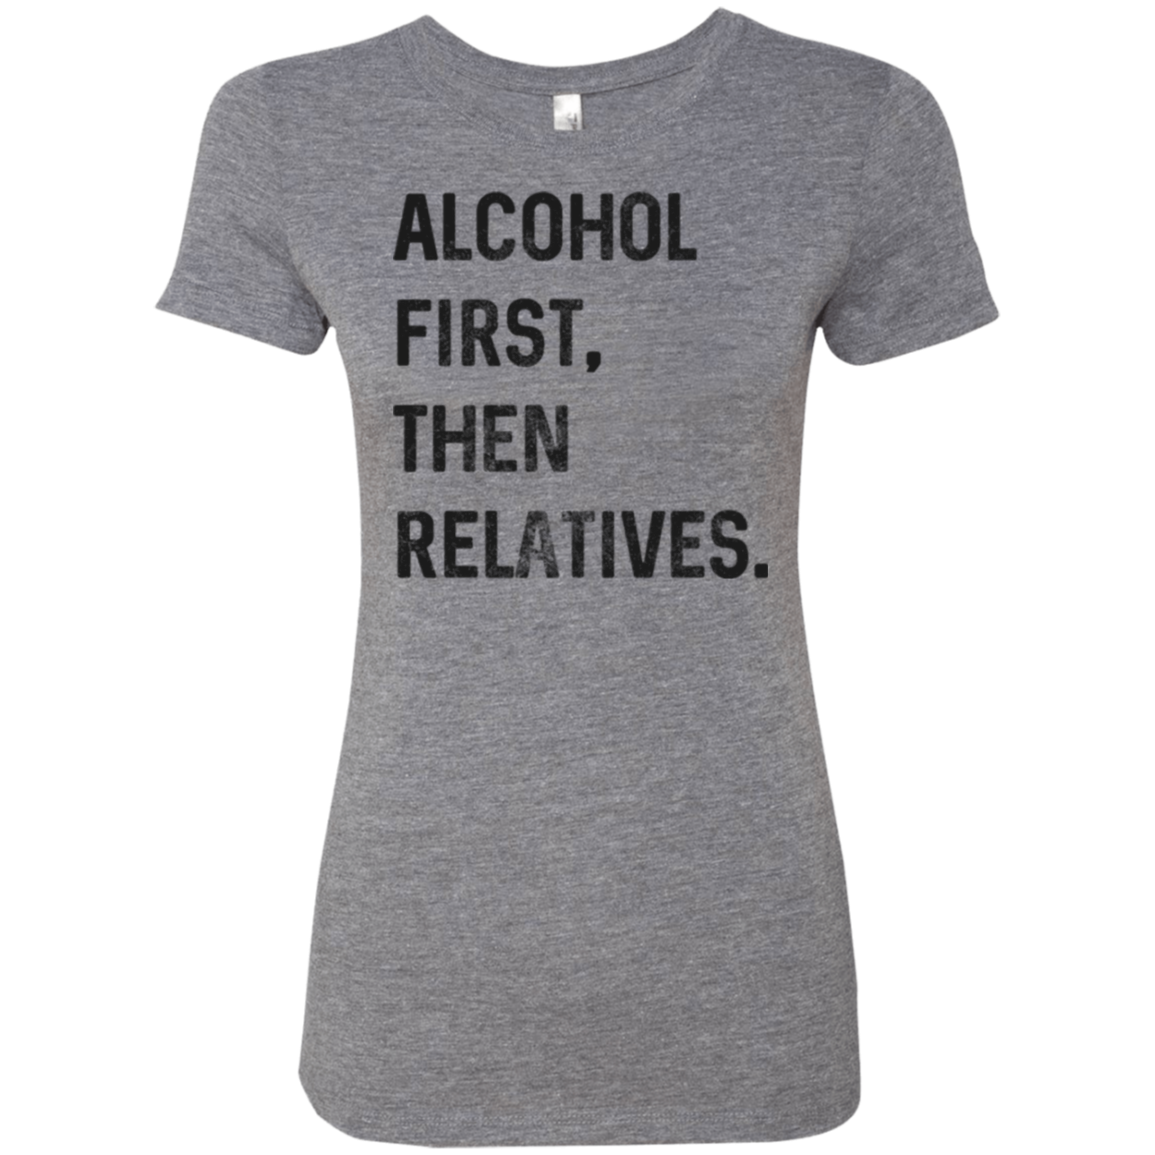 Alcohol First then Relatives Women's Classic Tee - Trendy Tees